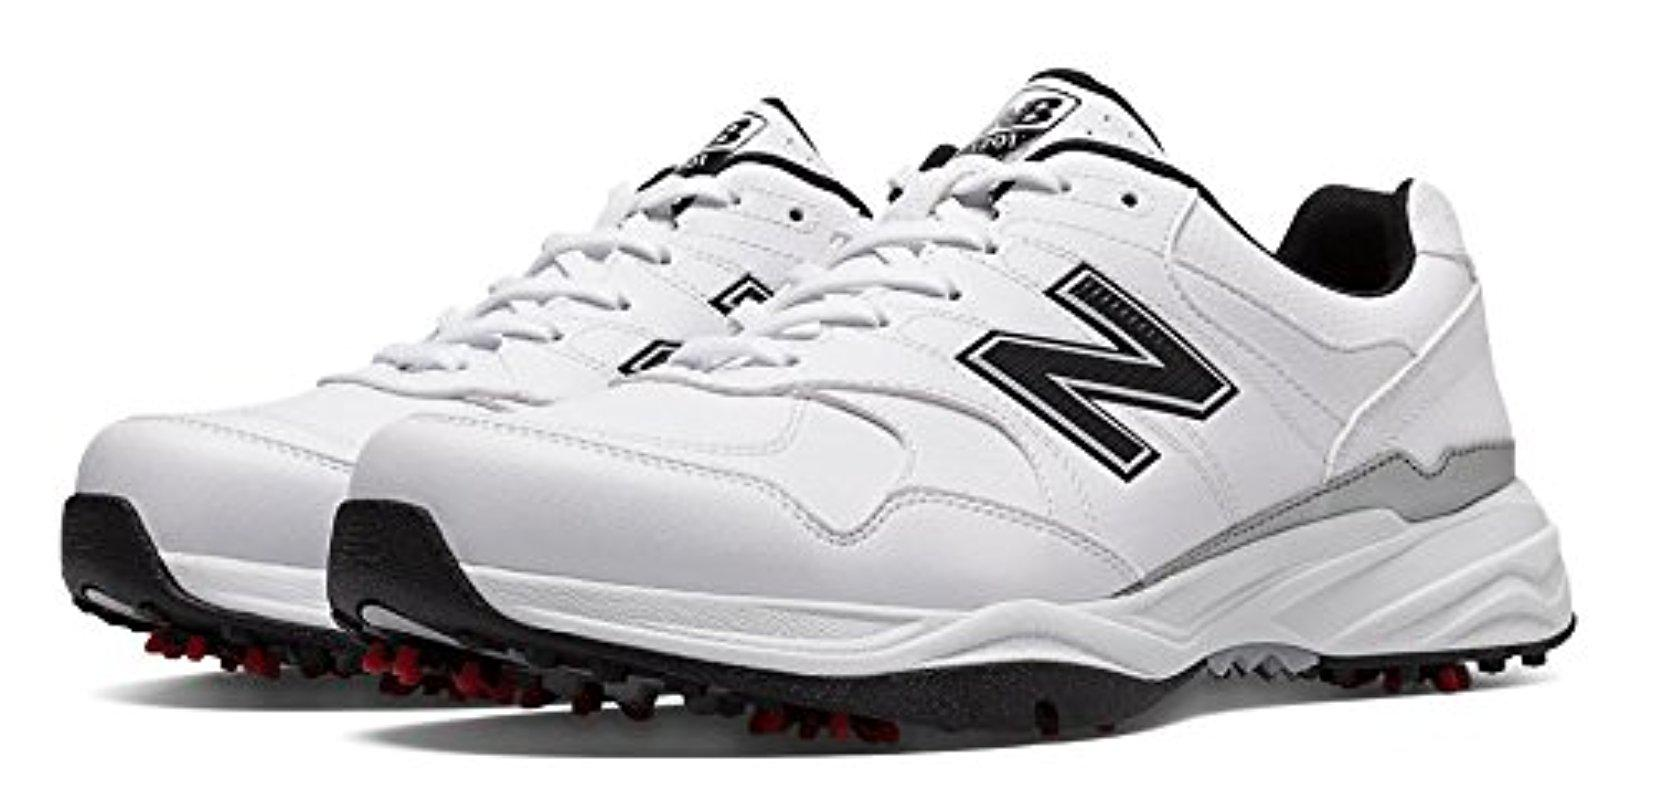 Nbg1701 Spiked Golf Shoe in White